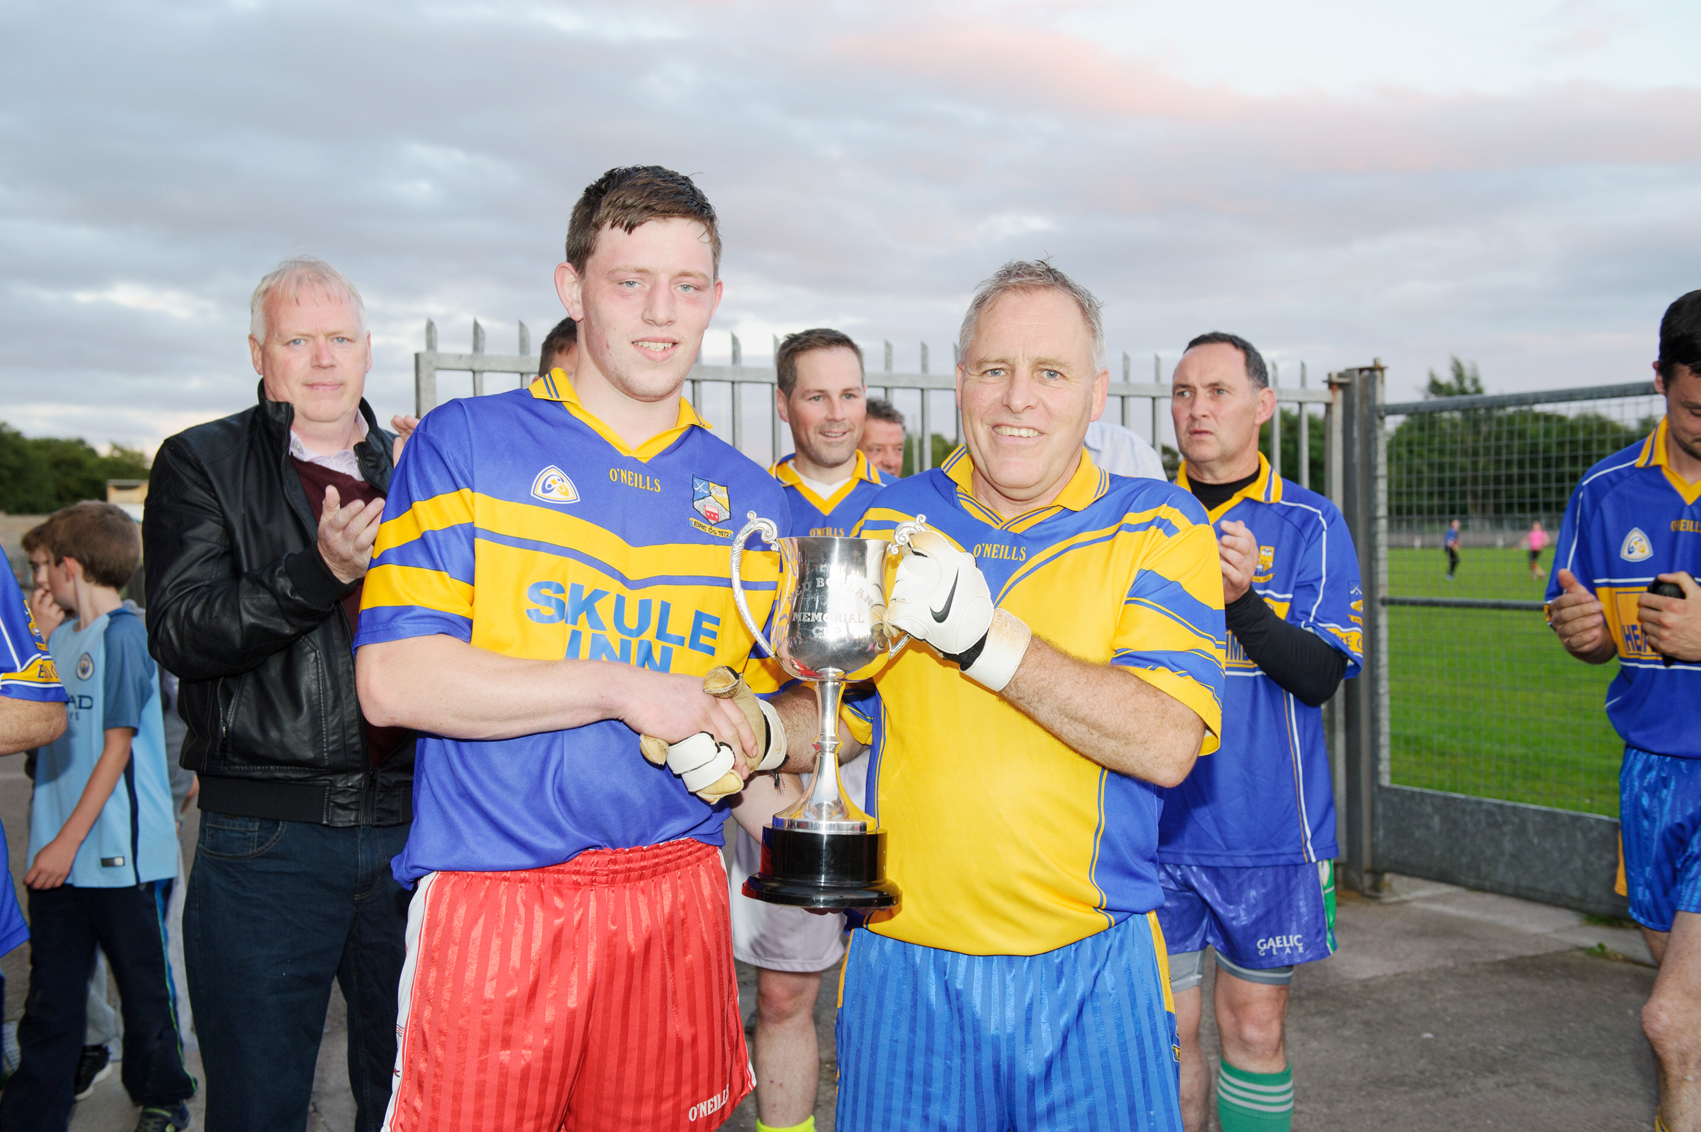 Niall Boylan, left, making the presentation of The Ned Boylan Cup for the recreational football final to Gerry Reilly, captain of the Eire Óg team, that won the final. ©Rory Geary/The Northern Standard